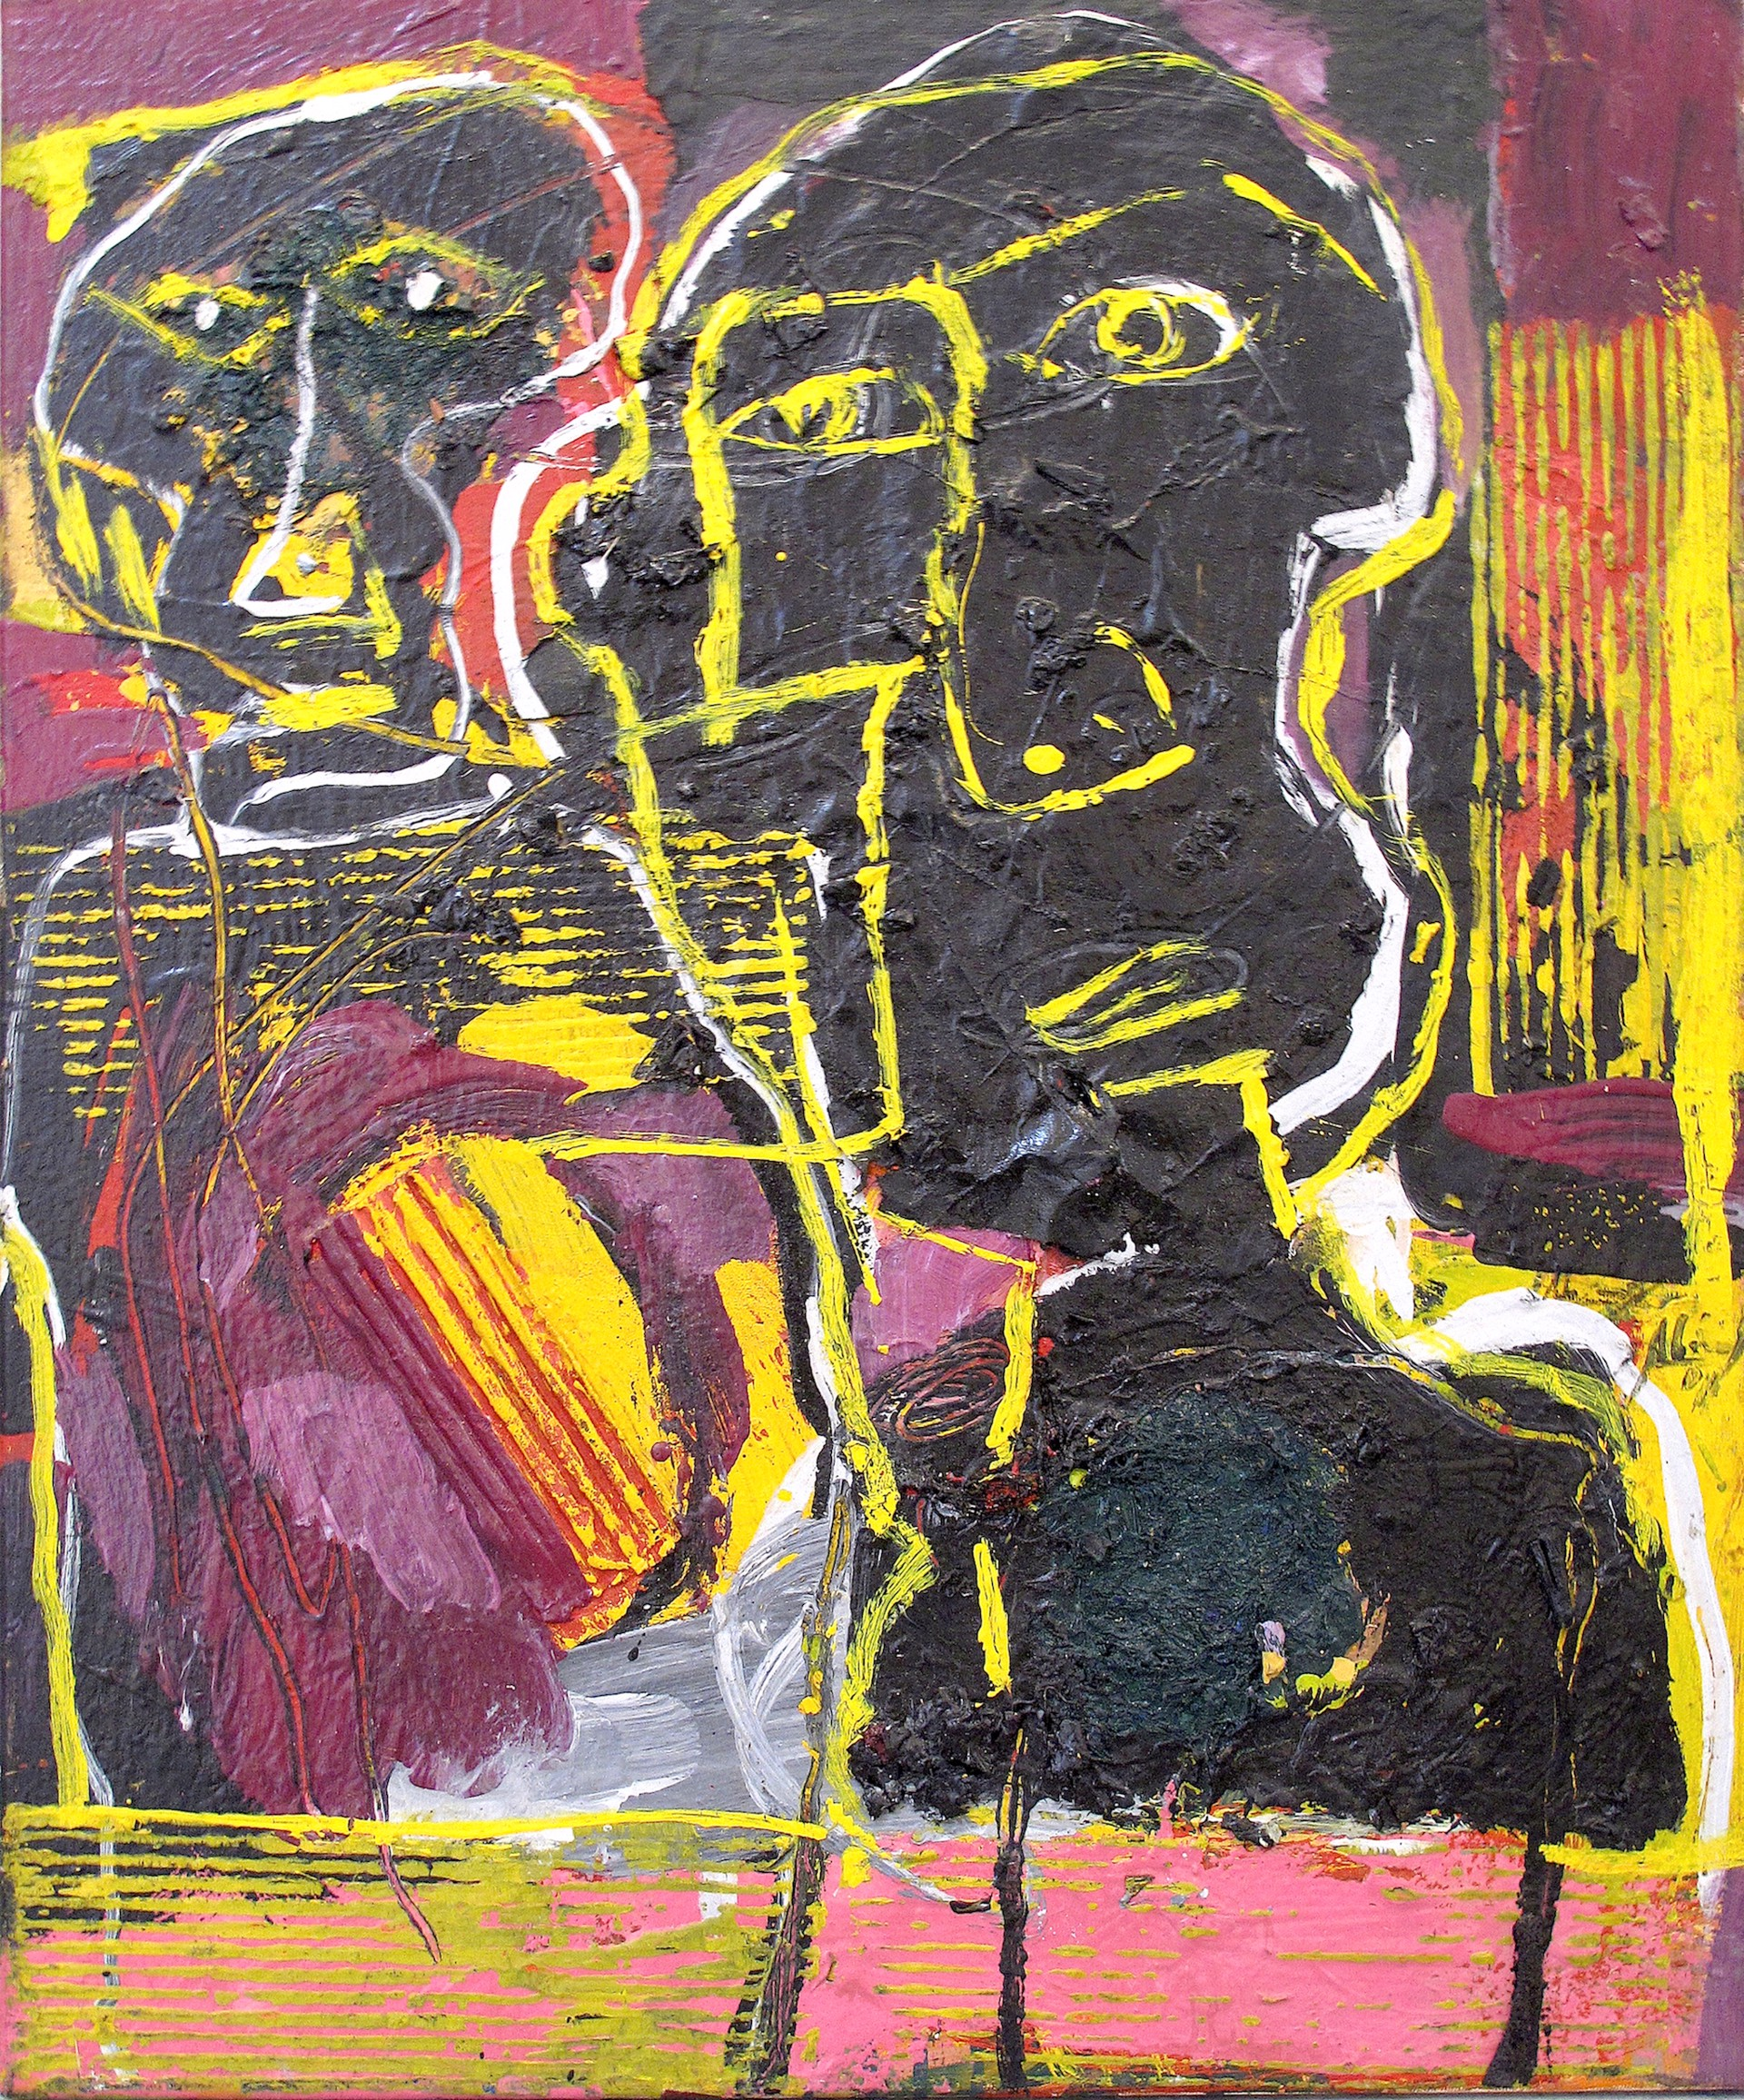 Untitled (Two Portraits) by Alejandro Santiago